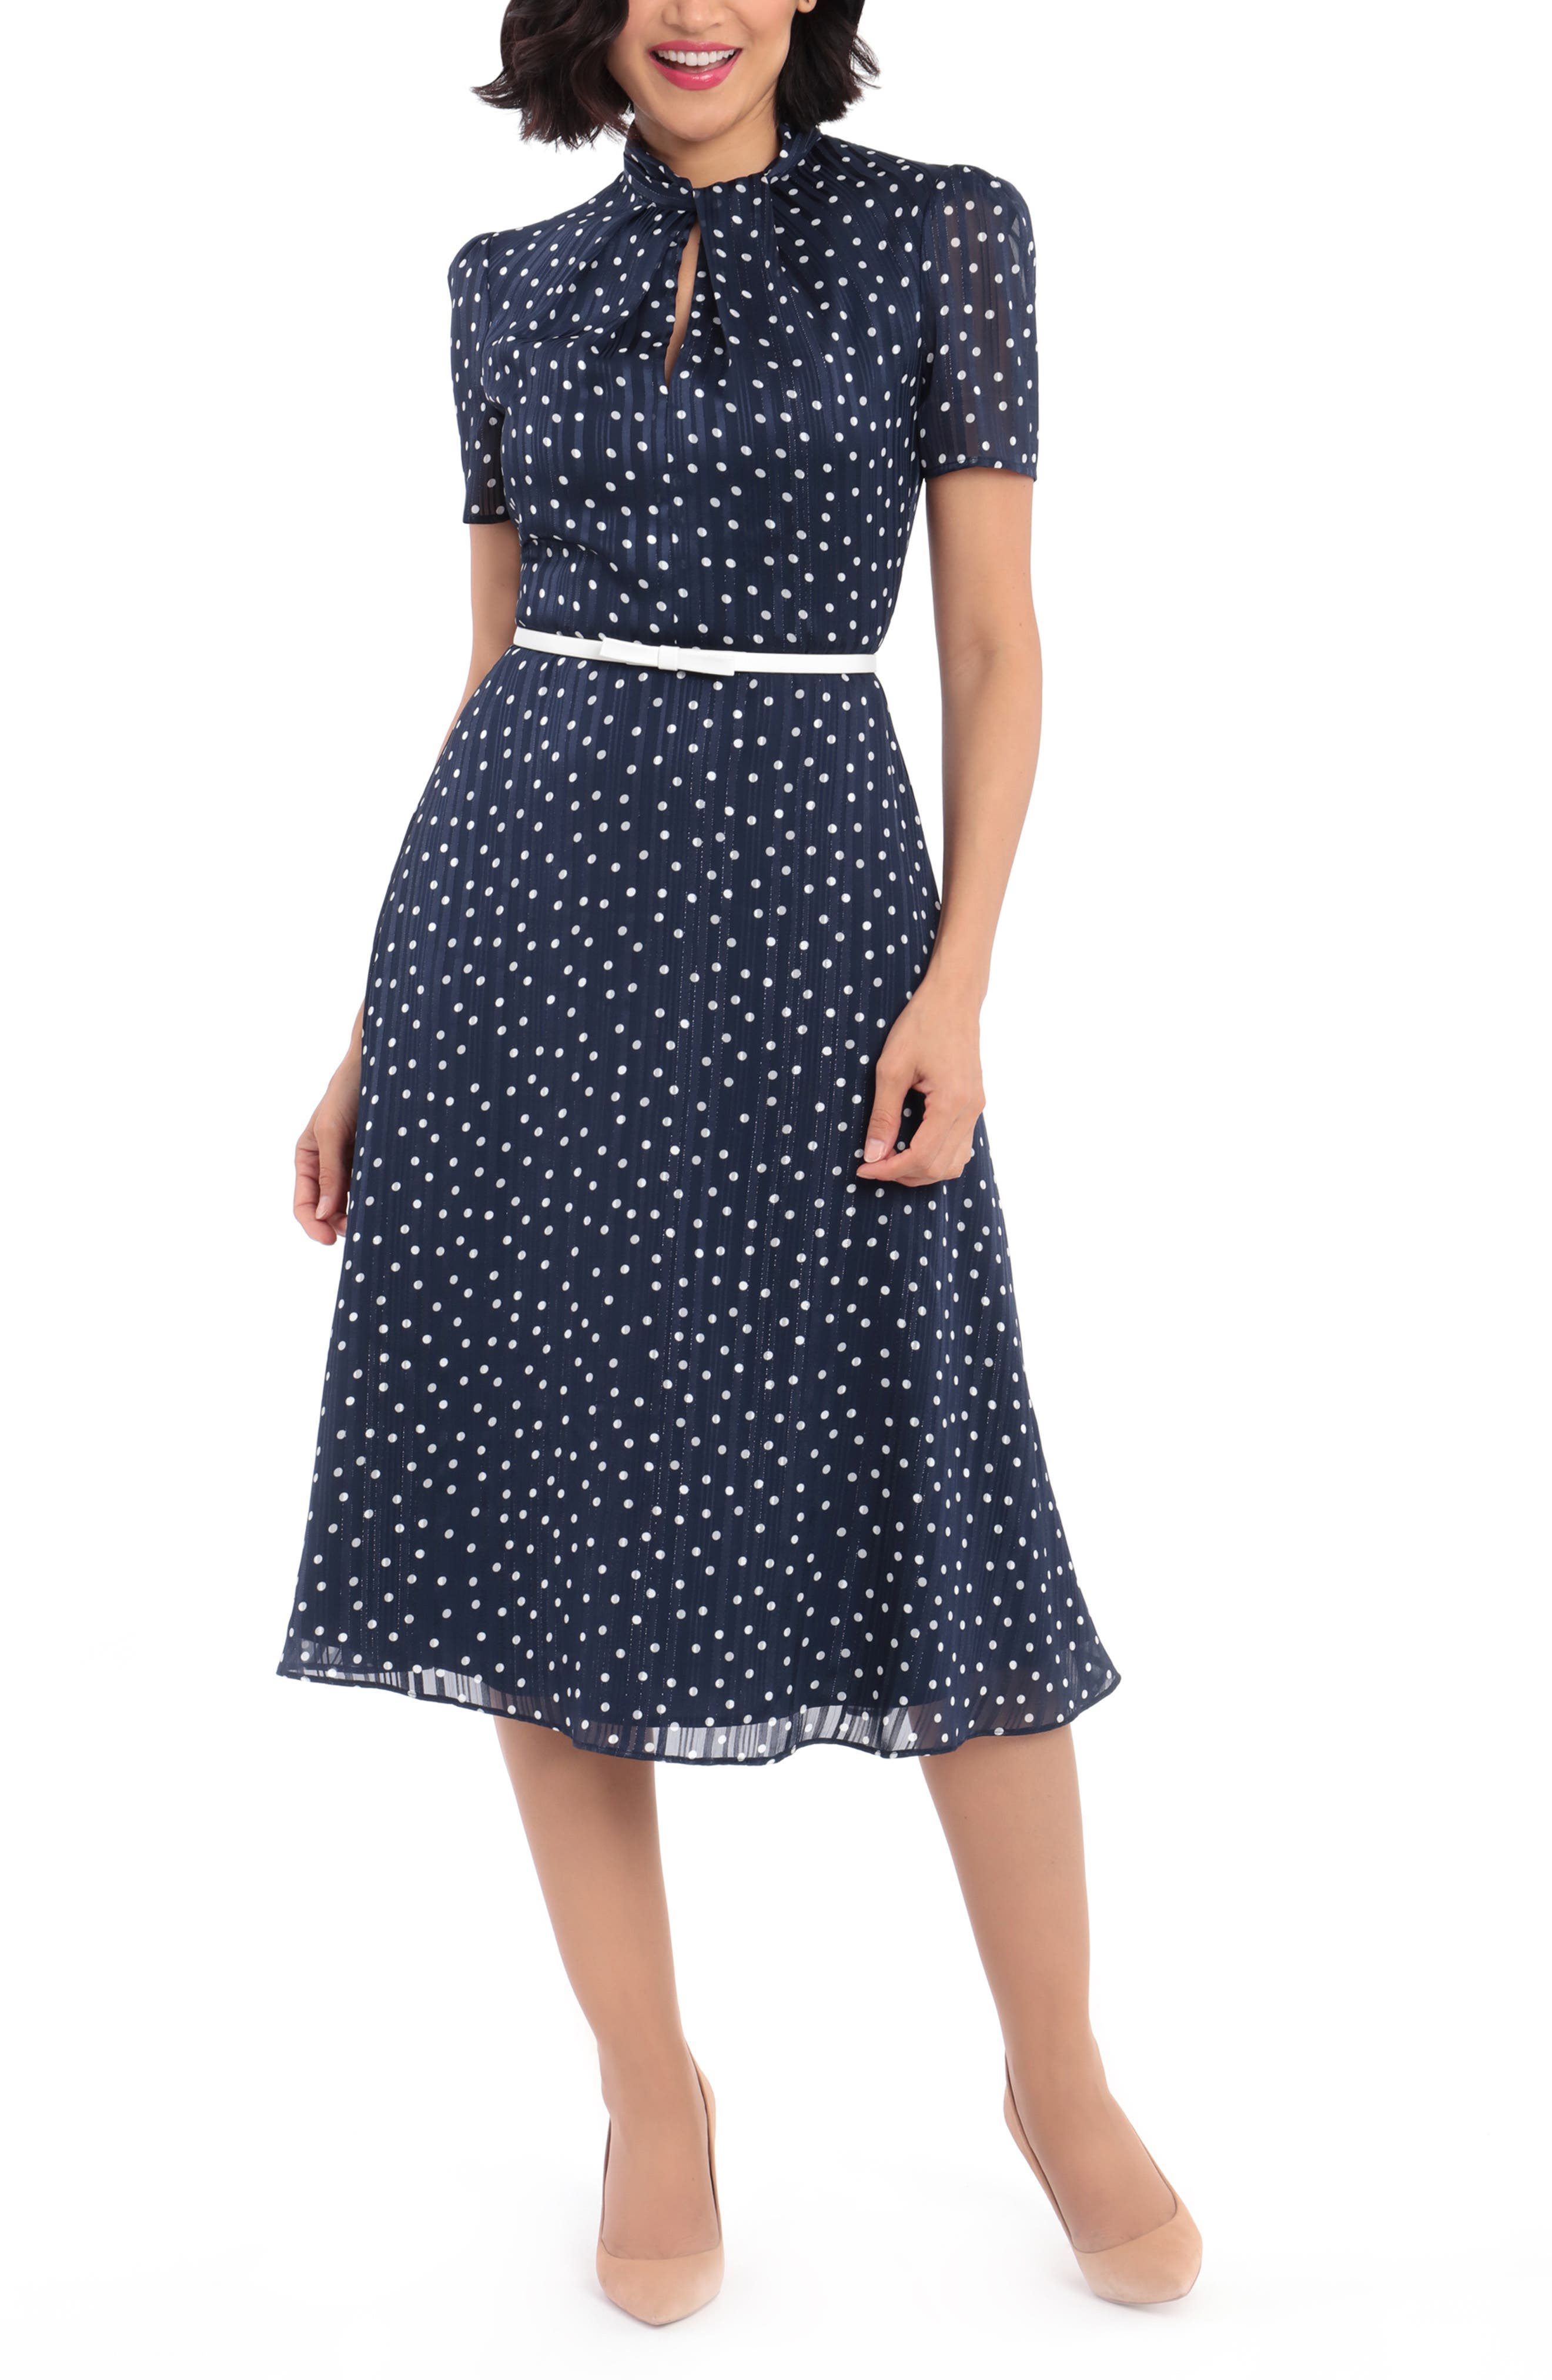 1940s Fashion Advice for Tall Women Womens Maggy London Metallic Dot Midi Dress Size 6 - Blue $158.00 AT vintagedancer.com